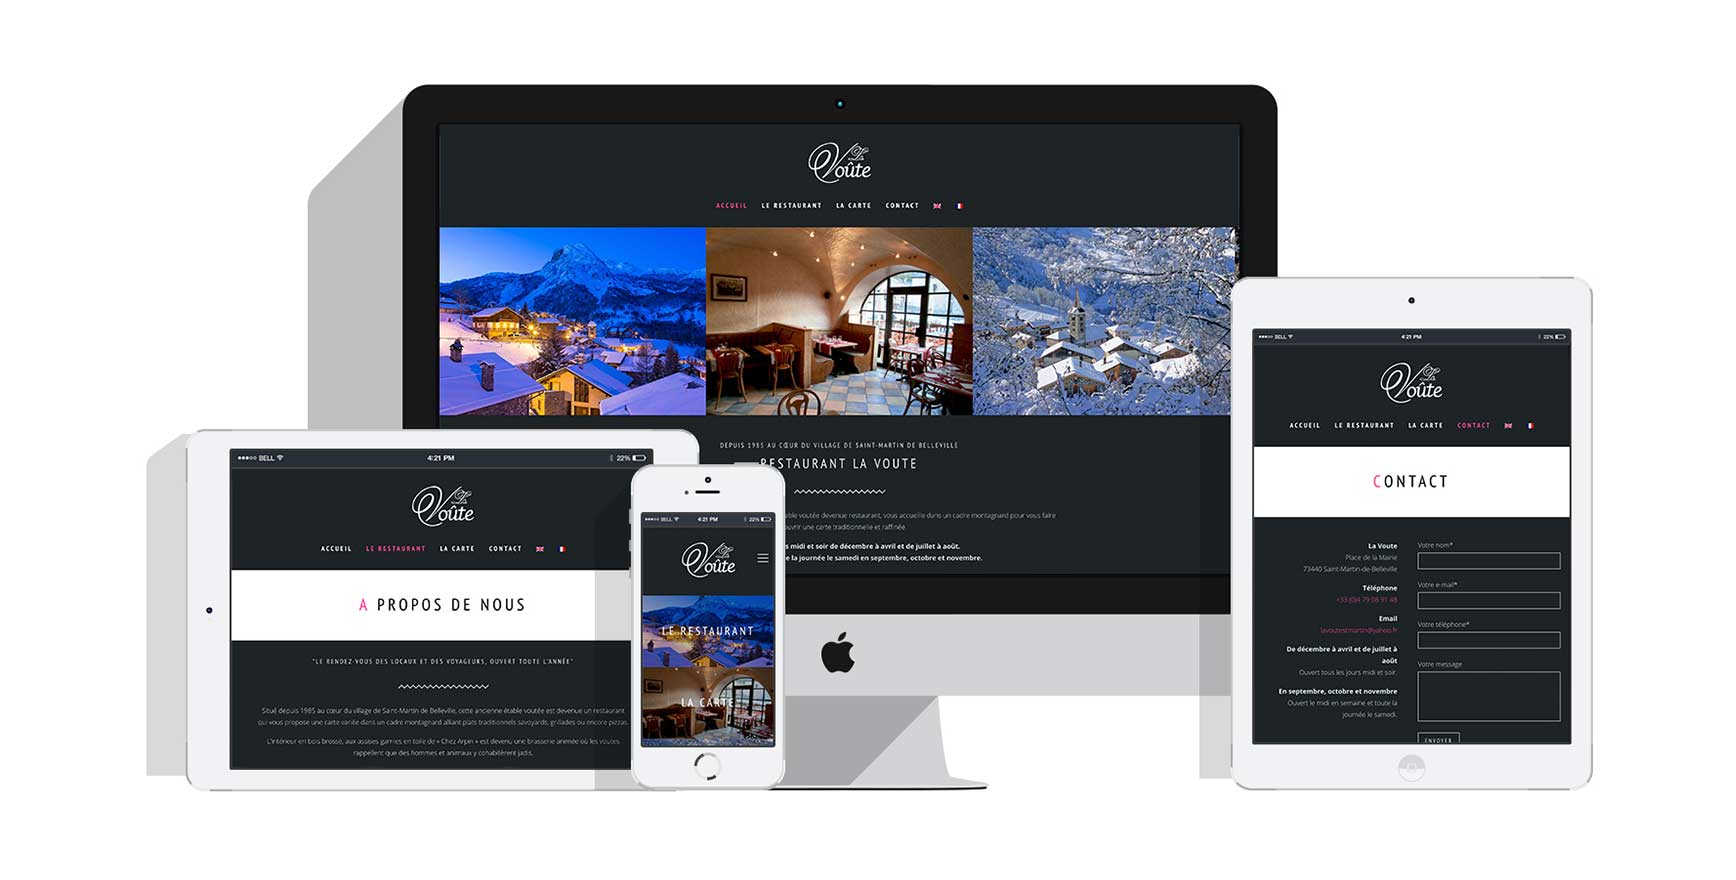 portfolio-la-voute-site-florence-borrel-flobo-design-graphique-infographie-webdesign-savoie-tarentaise-meribel-menuires-courchevel